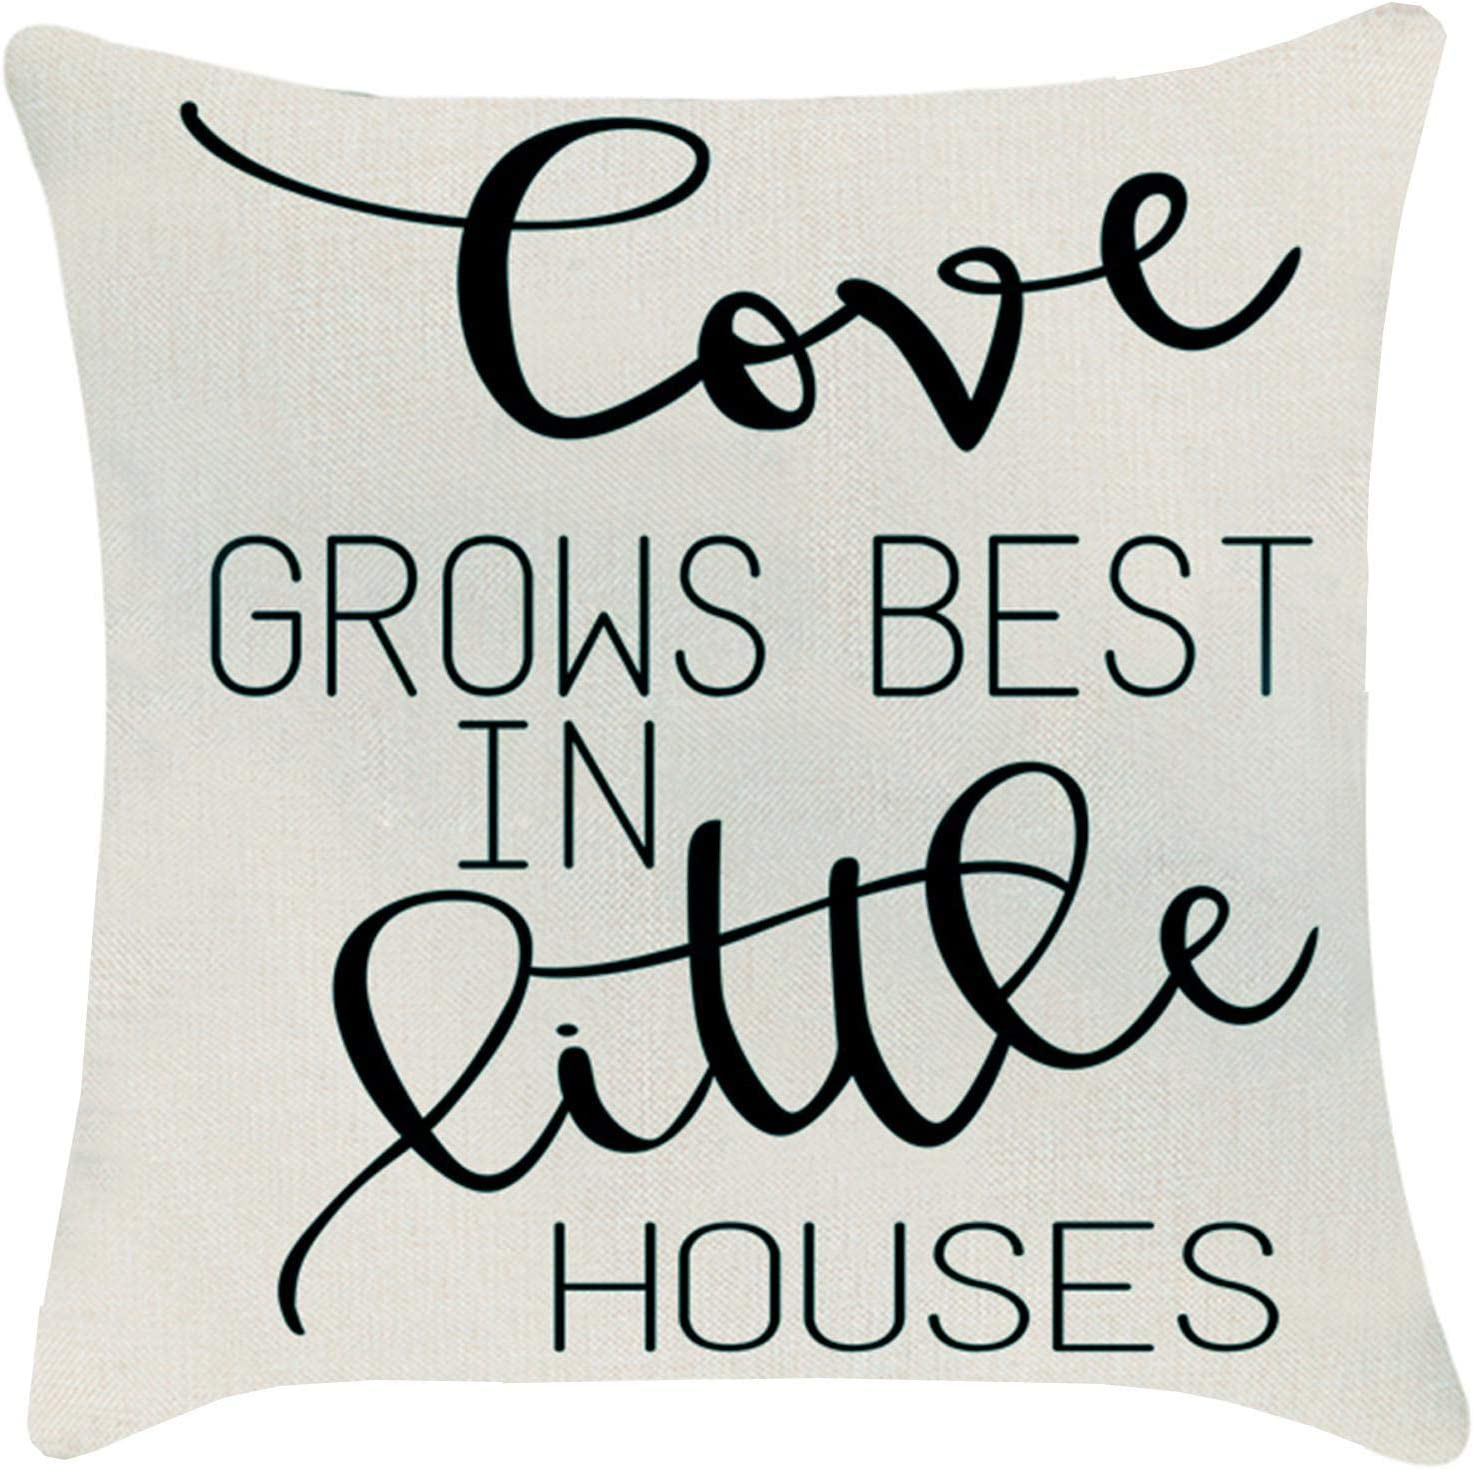 ZUEXT Love Grows Best in Little Houses Throw Pillow Cover 18x18 Inch Double Sided, Cotton Linen Indoor Outdoor Farmhouse Pillowcase for Sofa Home Decor Mother's Valentines Day Housewarming Gift